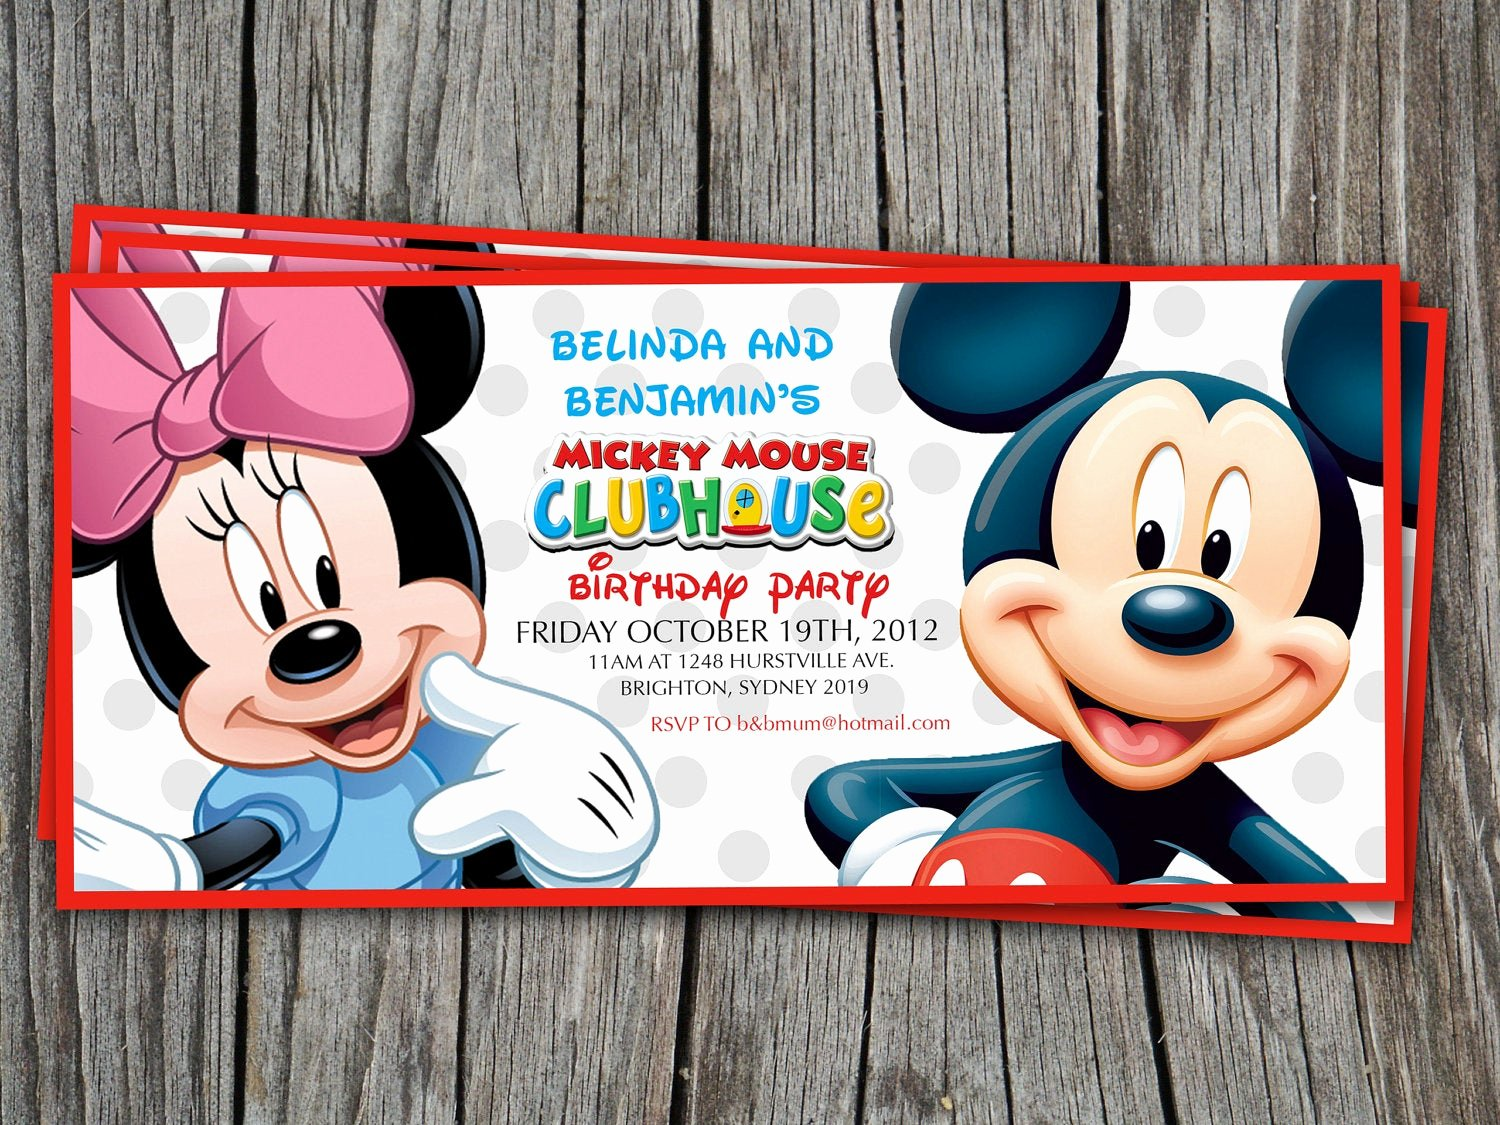 Mickey Mouse Clubhouse Invitation Awesome Twins Birthday Invitation Mickey Mouse Clubhouse Modern